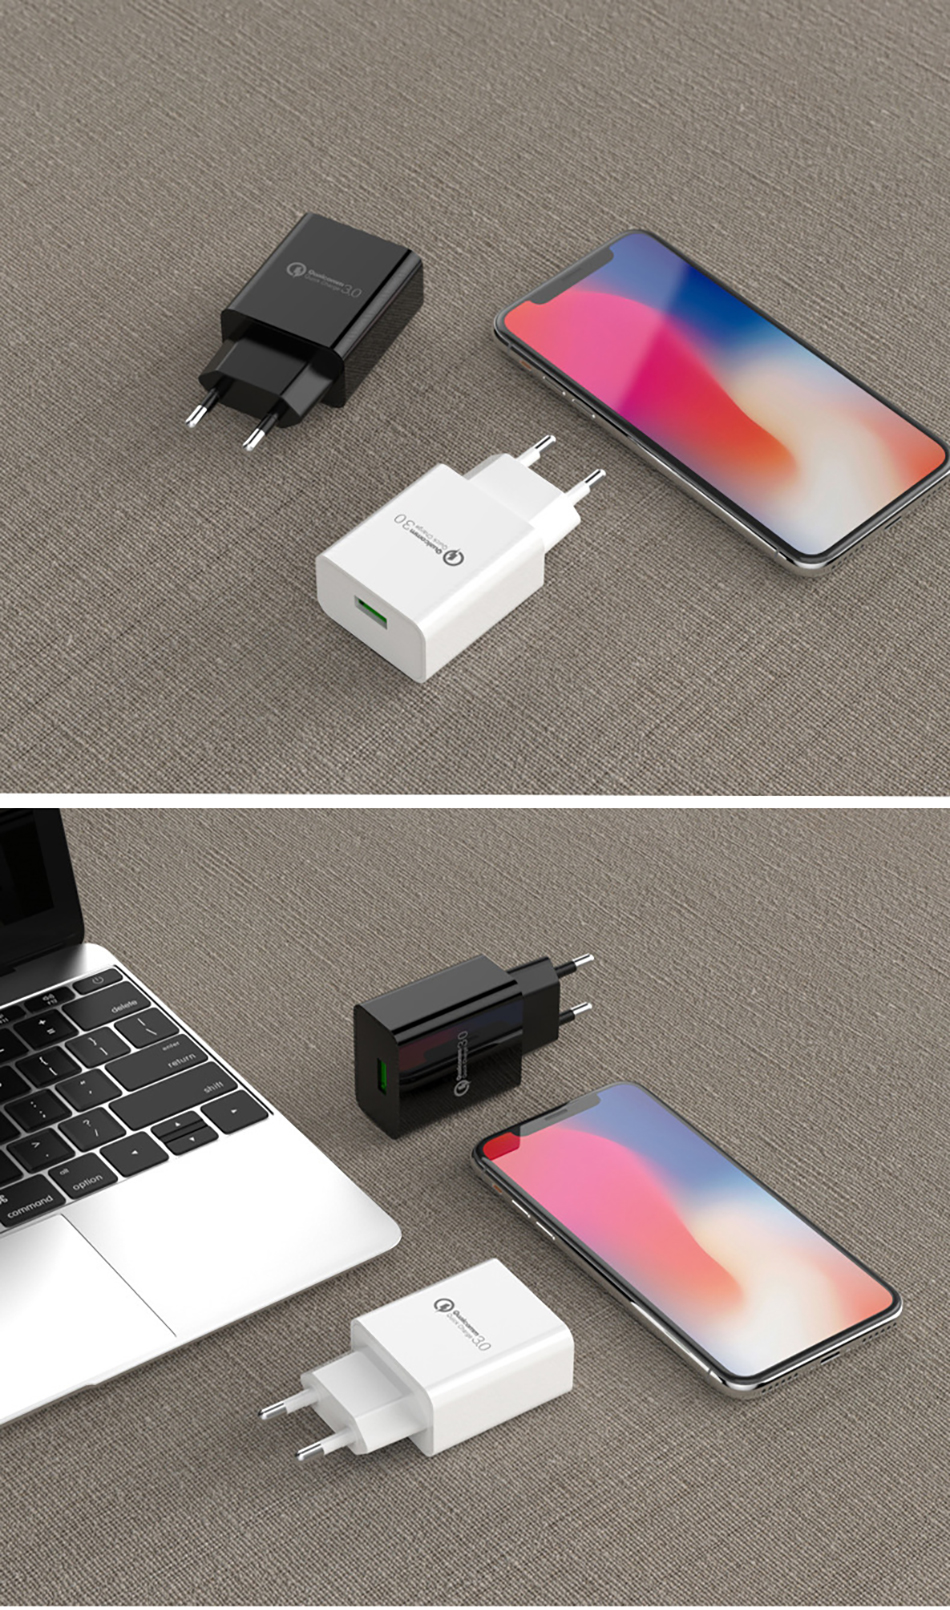 !ACCEZZ 18W Quick Charge 3.0 Fast Charging 3A EU Plug Wall Mobile Phone USB Charger Adapter For iPhone Samsung Xiaomi Huawei (13)